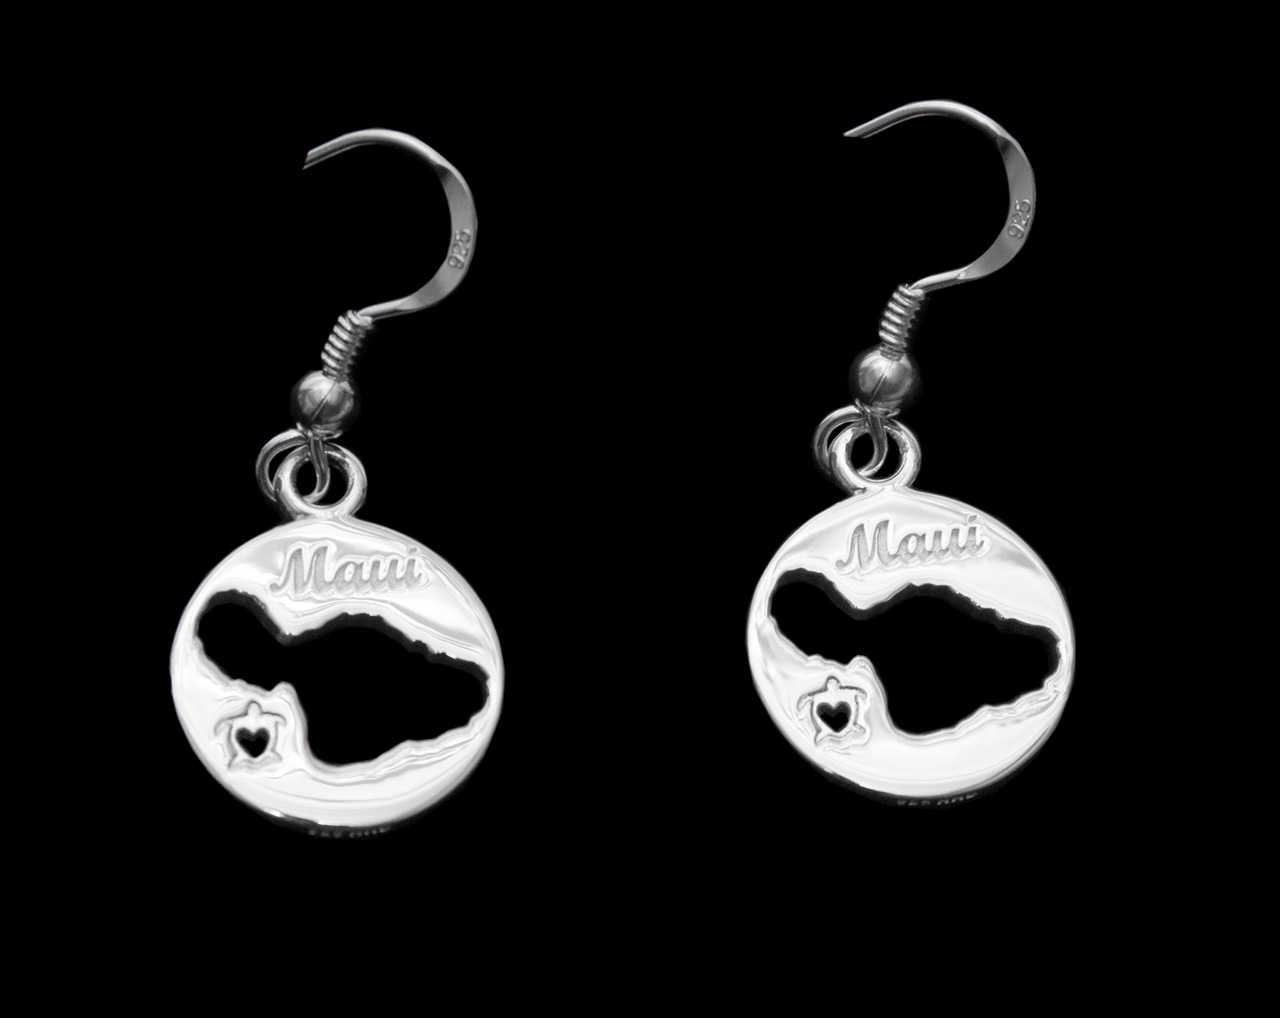 sterling silver circle earrings with Maui shaped cutouts and small hearts